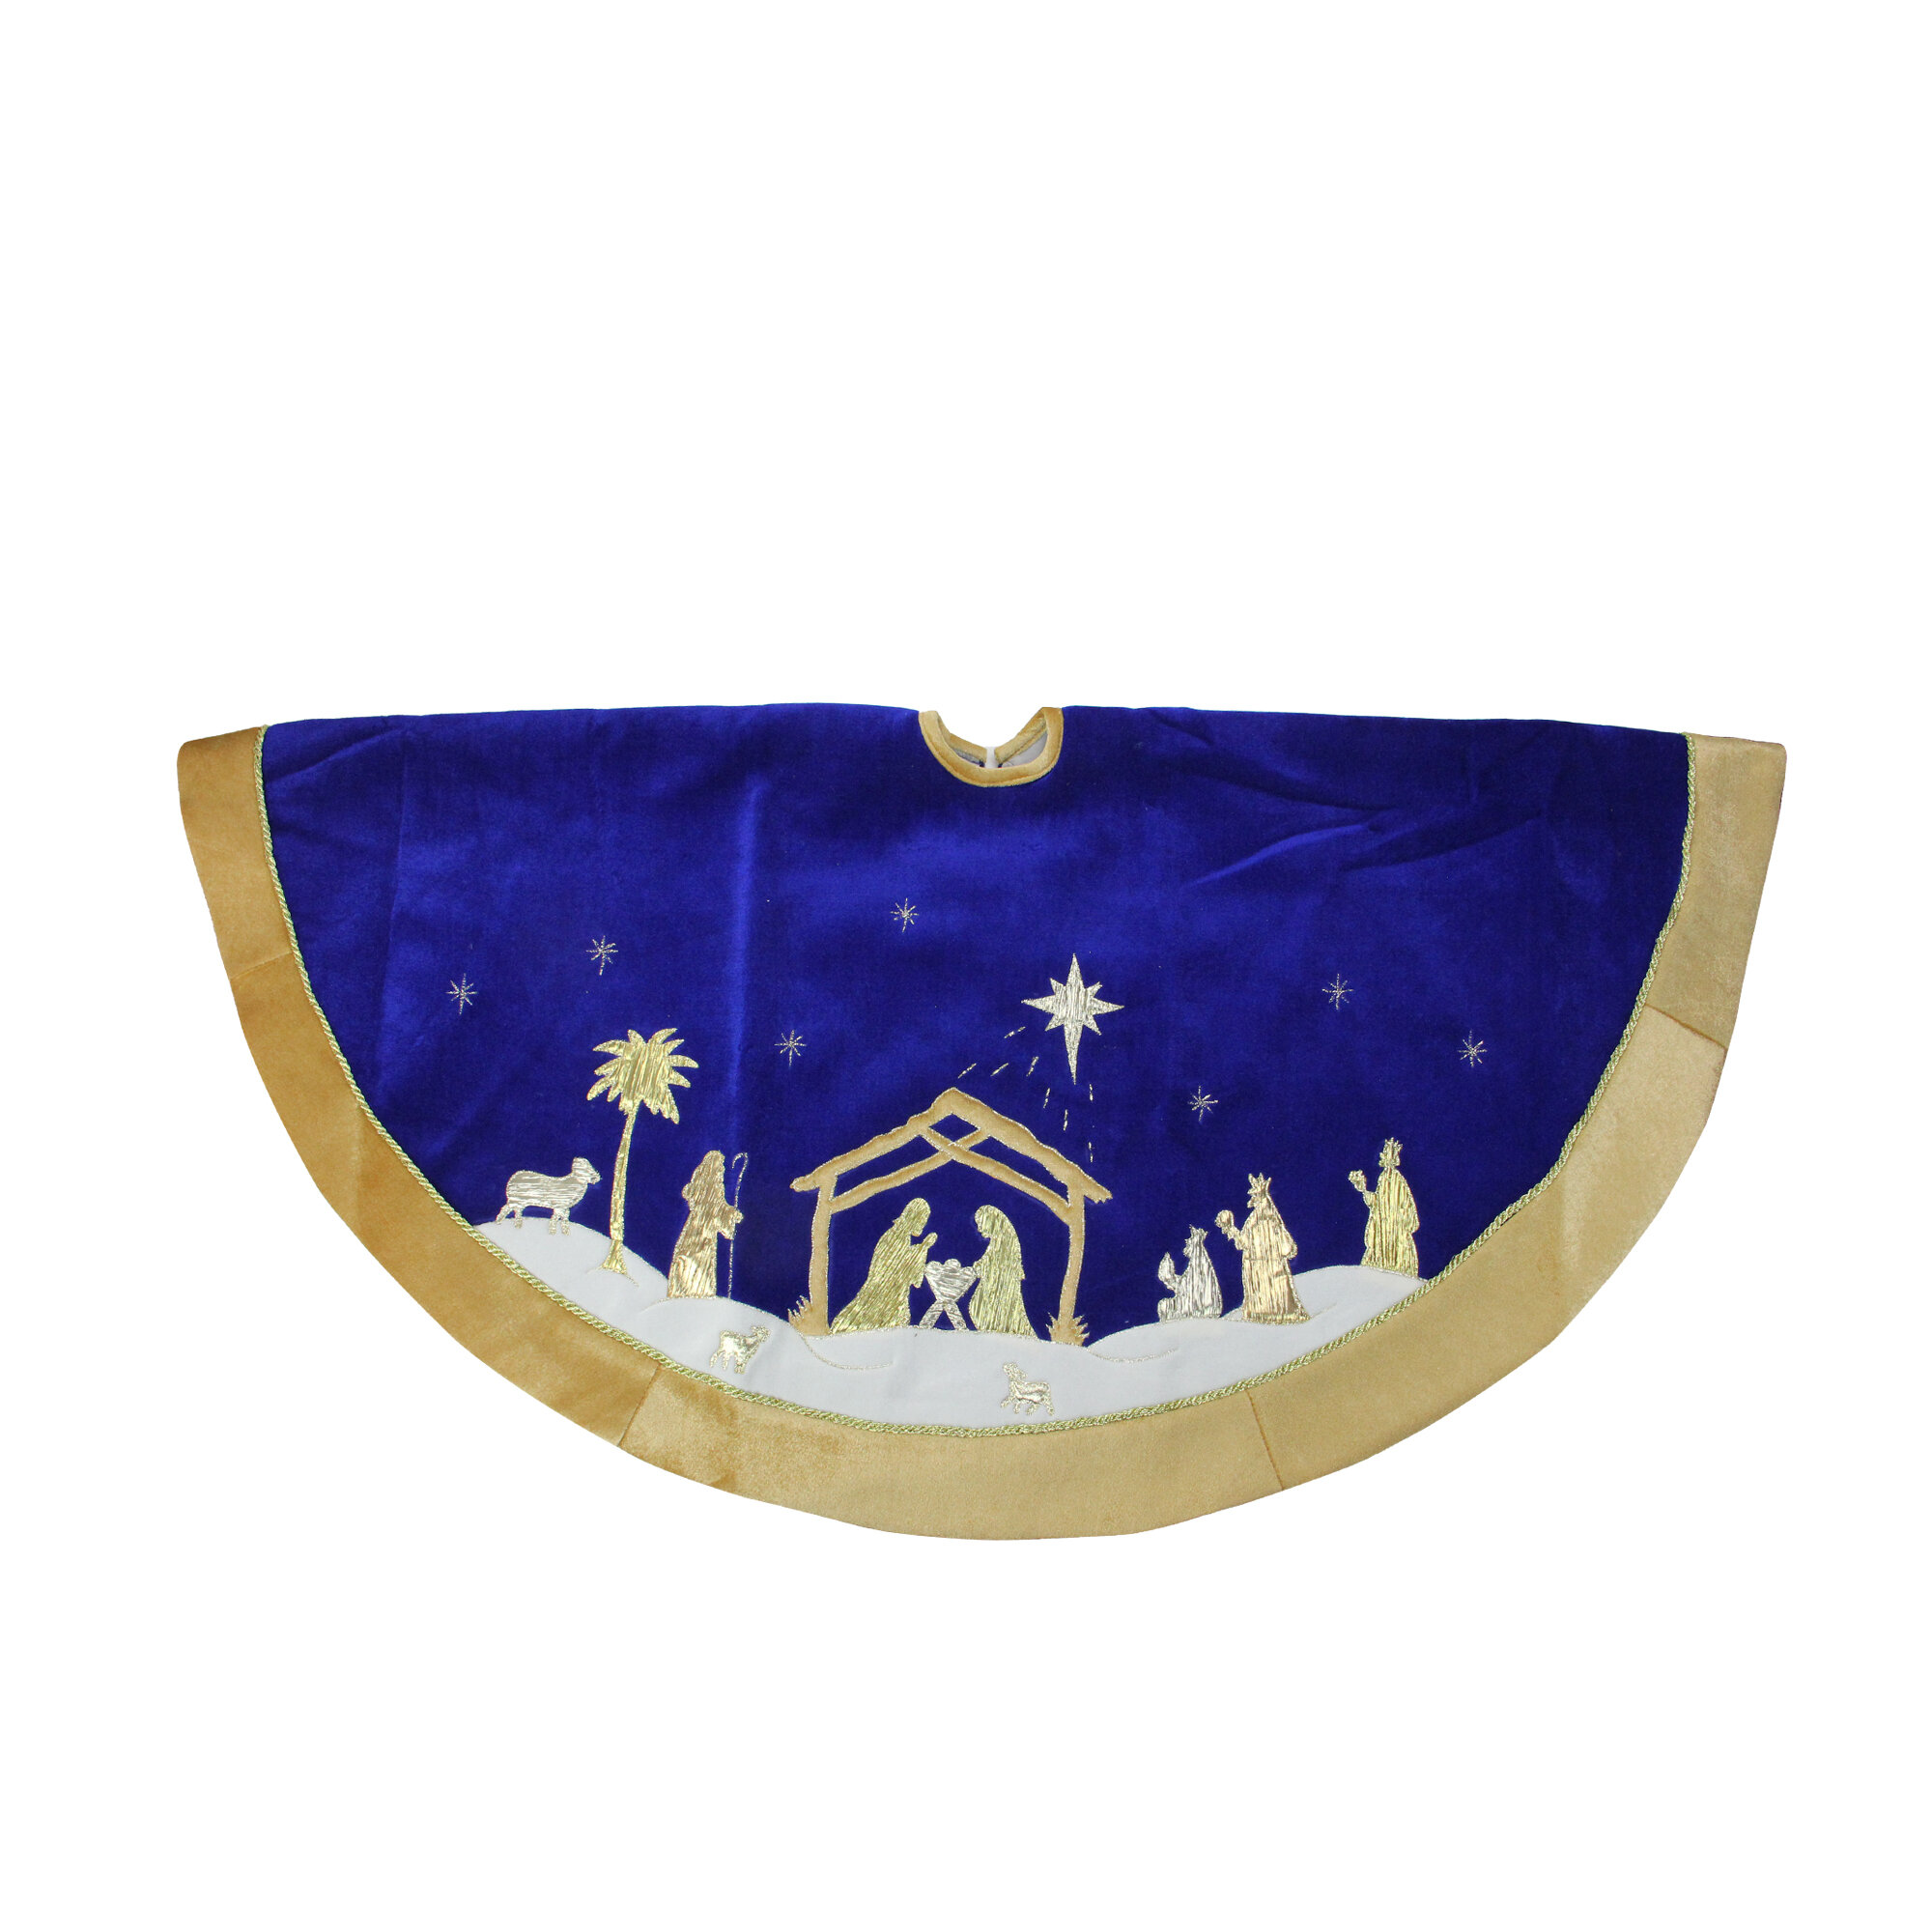 Northlight 48 Blue And Gold Nativity Scene Christmas Tree Skirt With Gold Border Wayfair